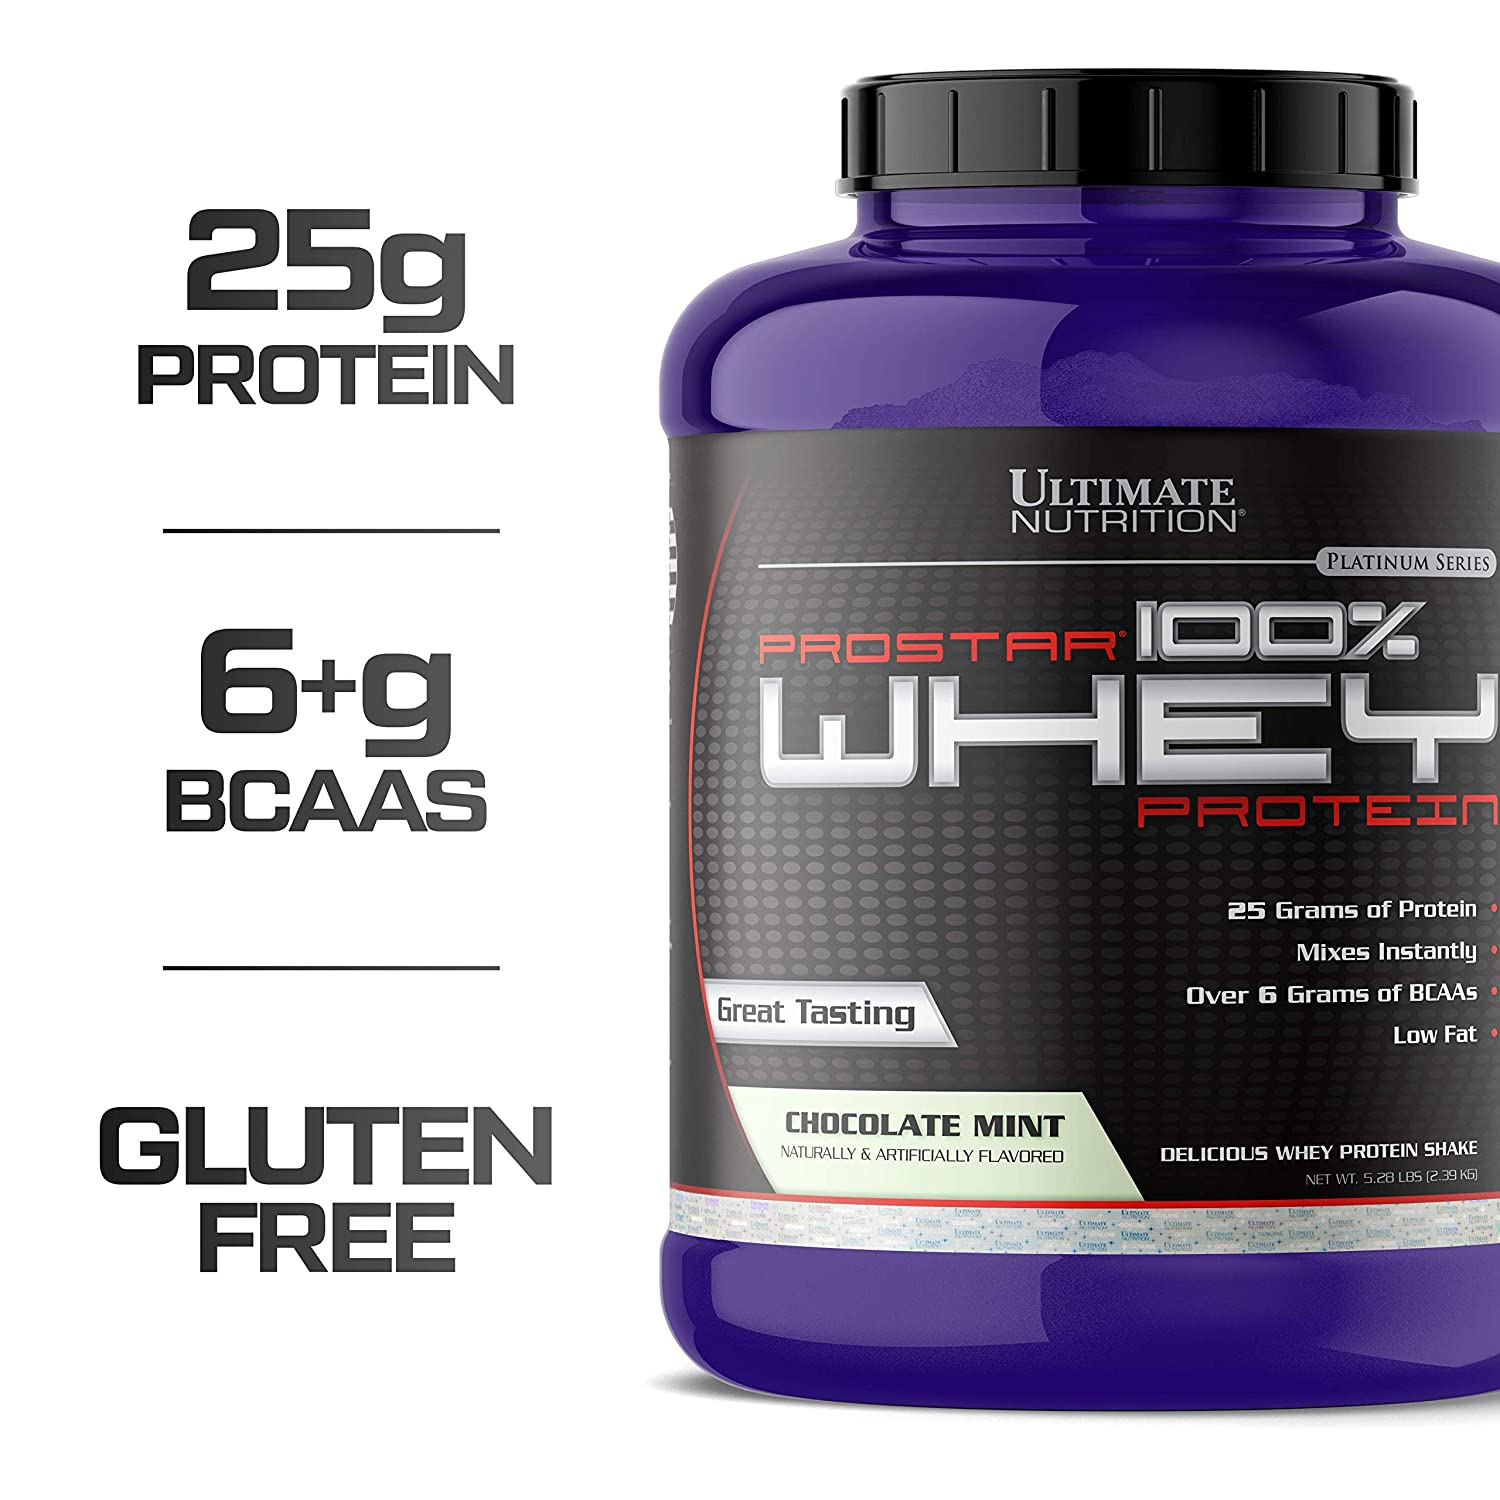 Ultimate Nutrition Prostar 100% Whey Protein - 5 28 lbs (Chocolate Mint)